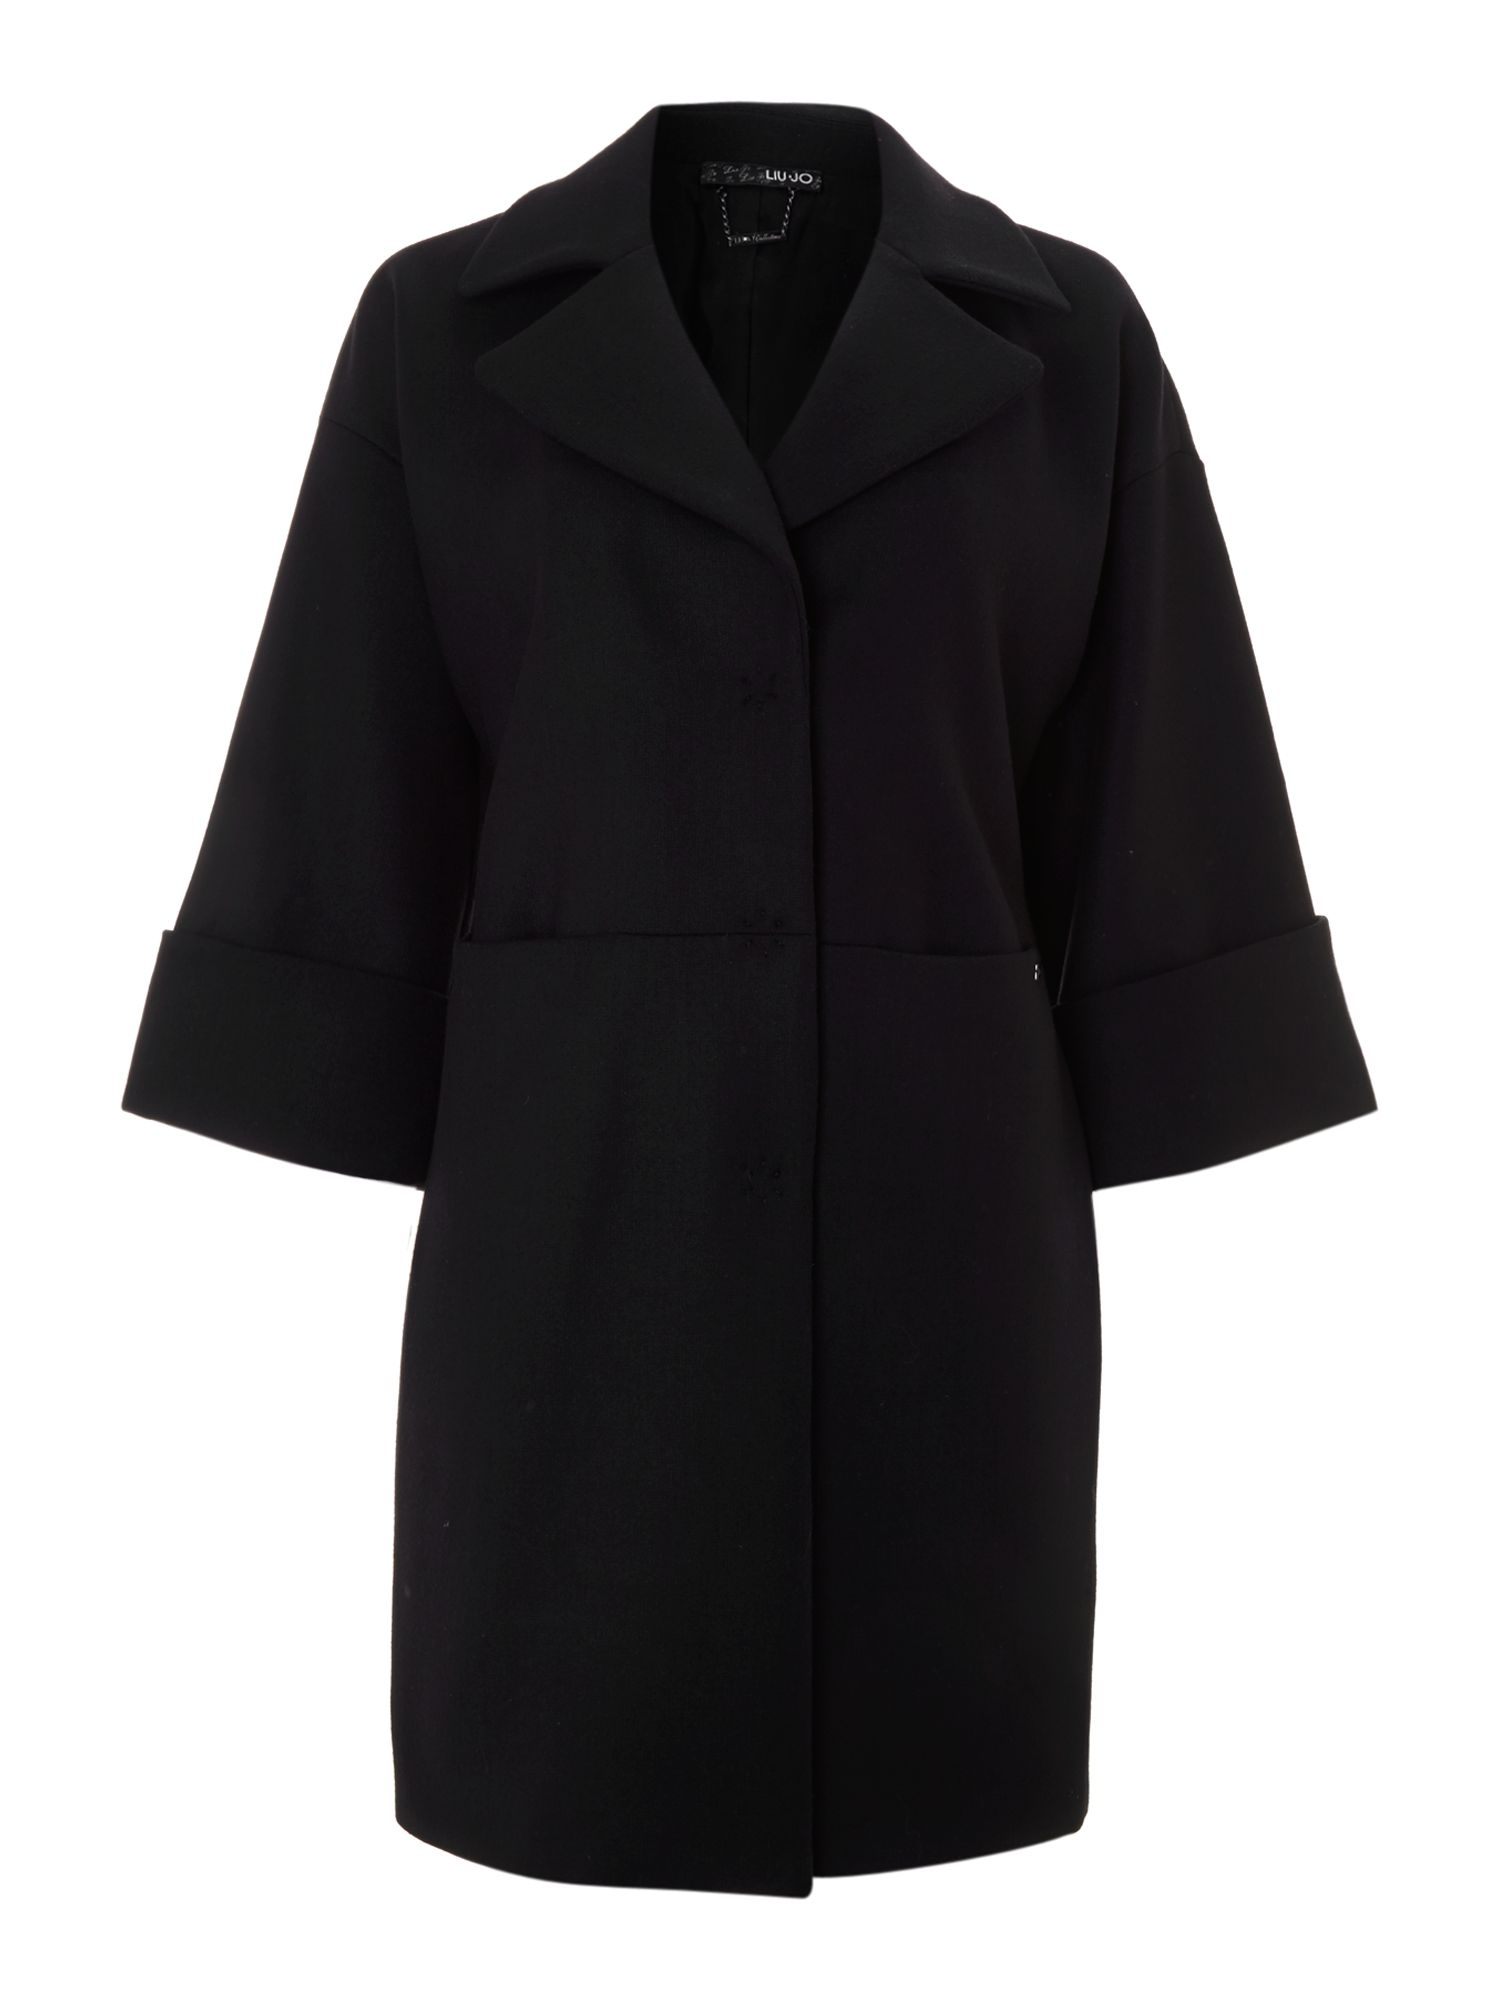 Long sleeve concealed button panel coat